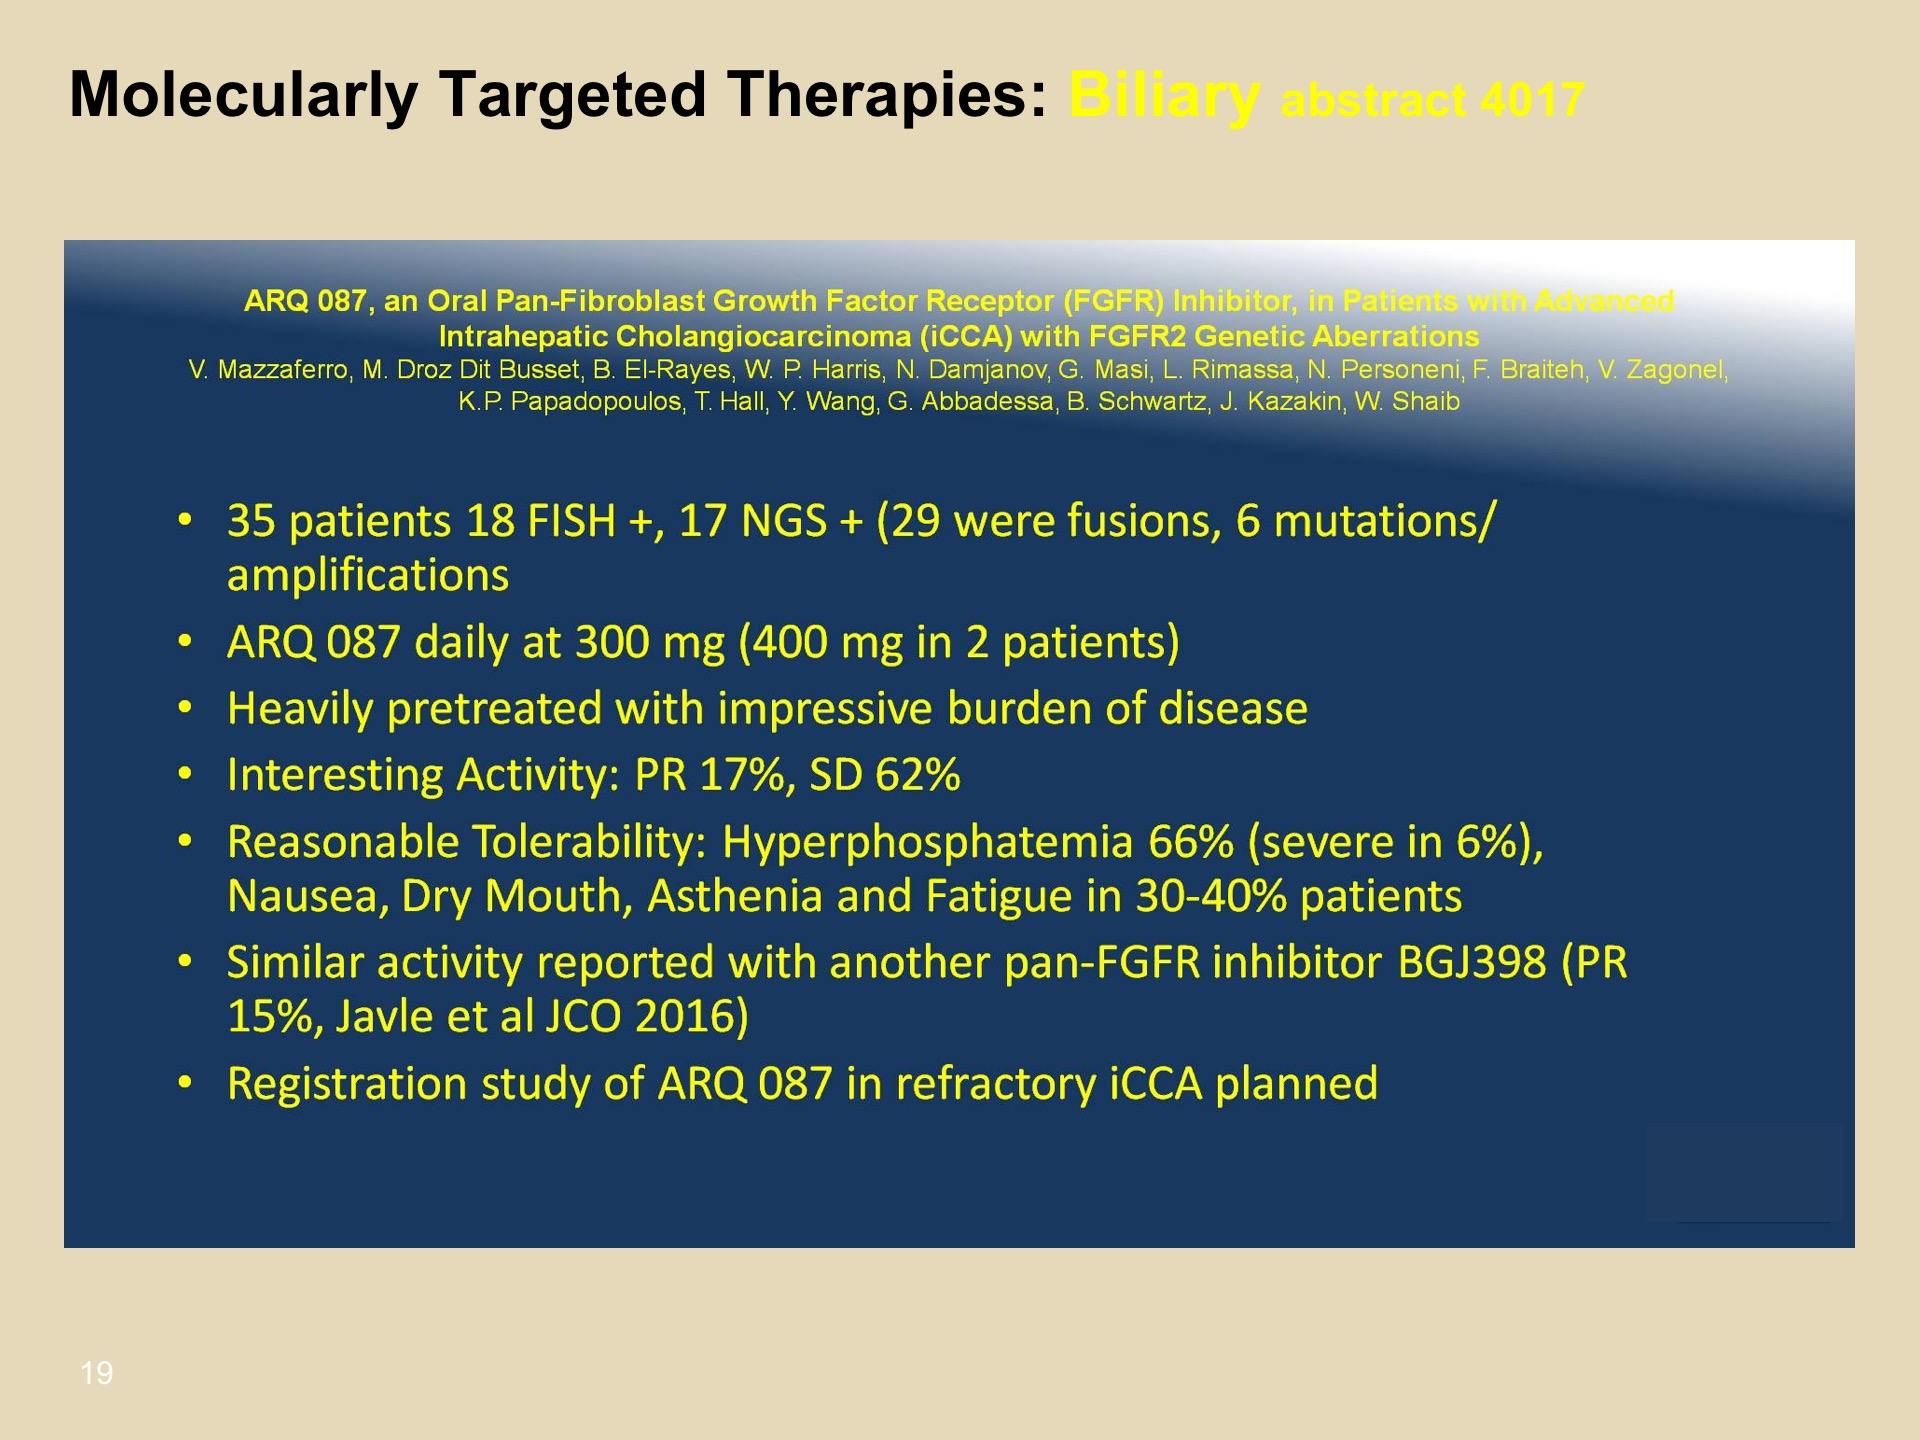 ASCO 2017 Review: Pancreaticobiliary Cancers | UPMC